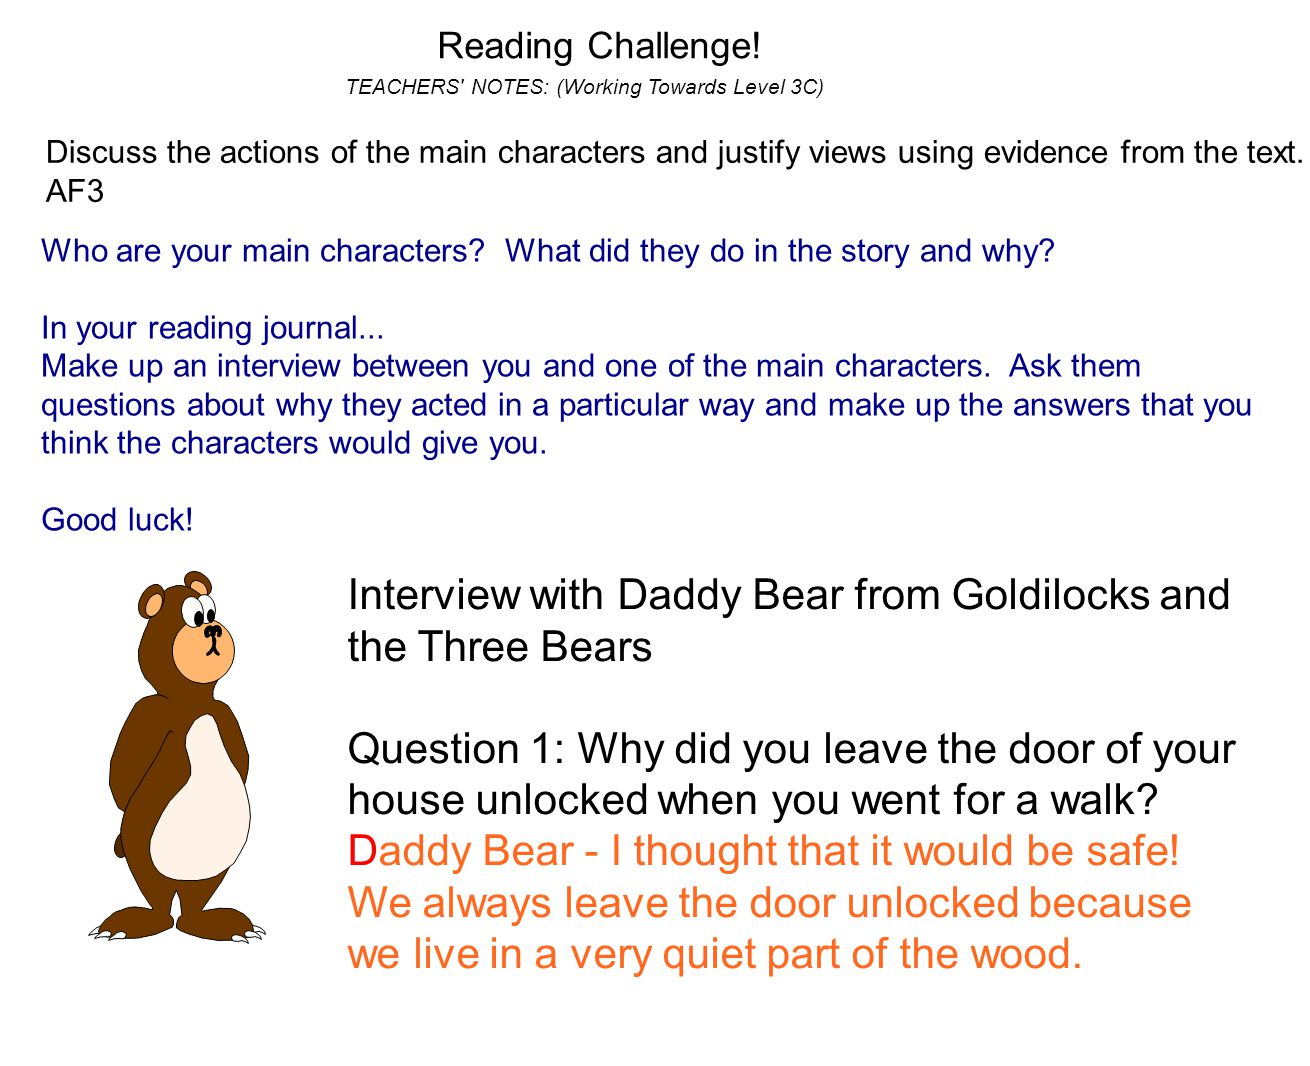 Interview with Daddy Bear from Goldilocks and the Three Bears